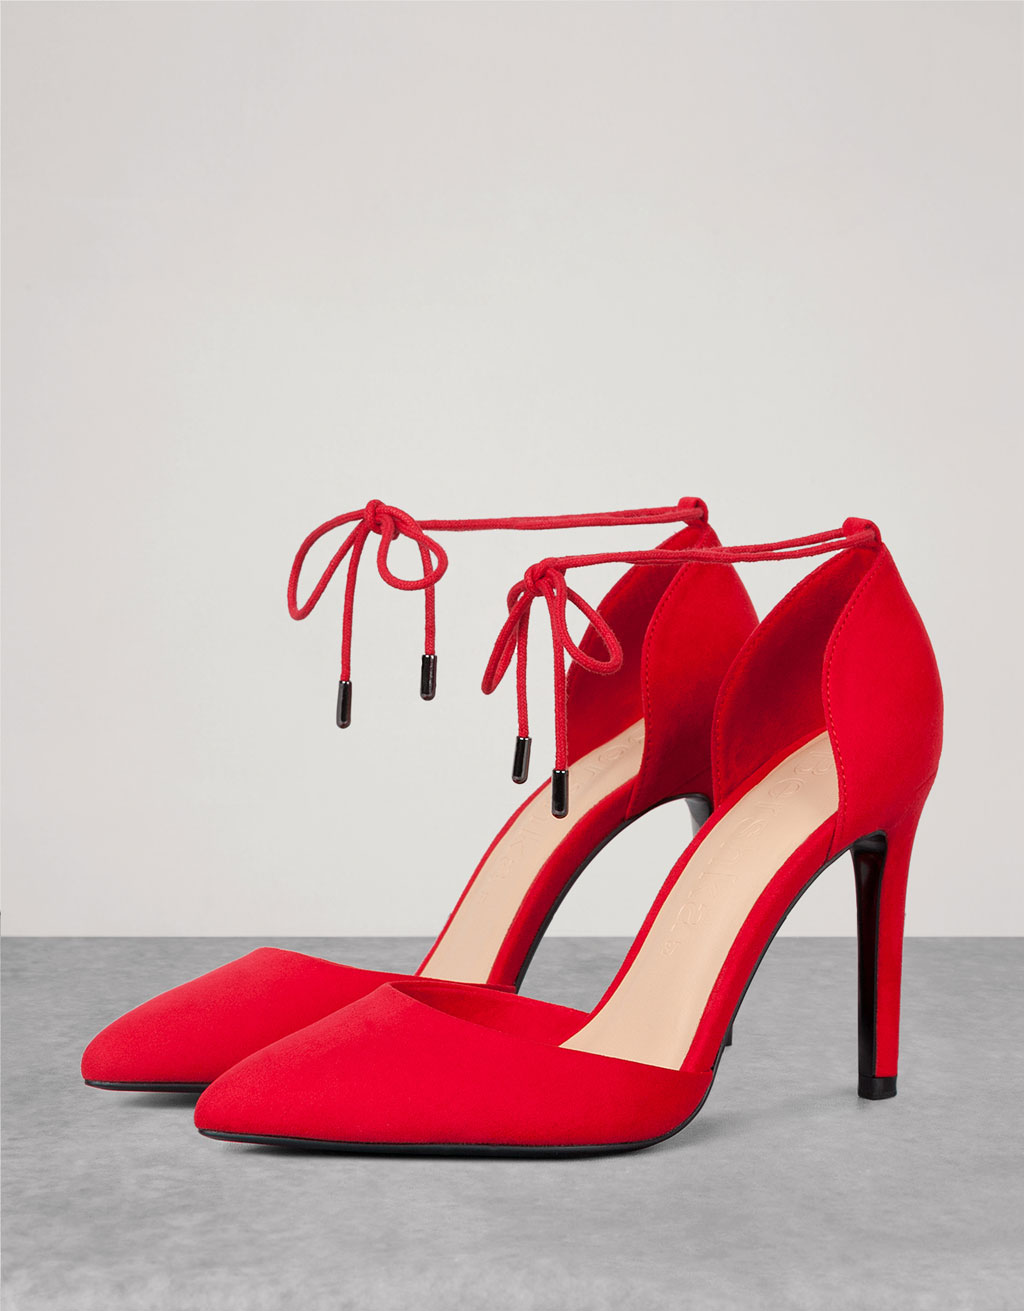 Strappy high heeled shoes